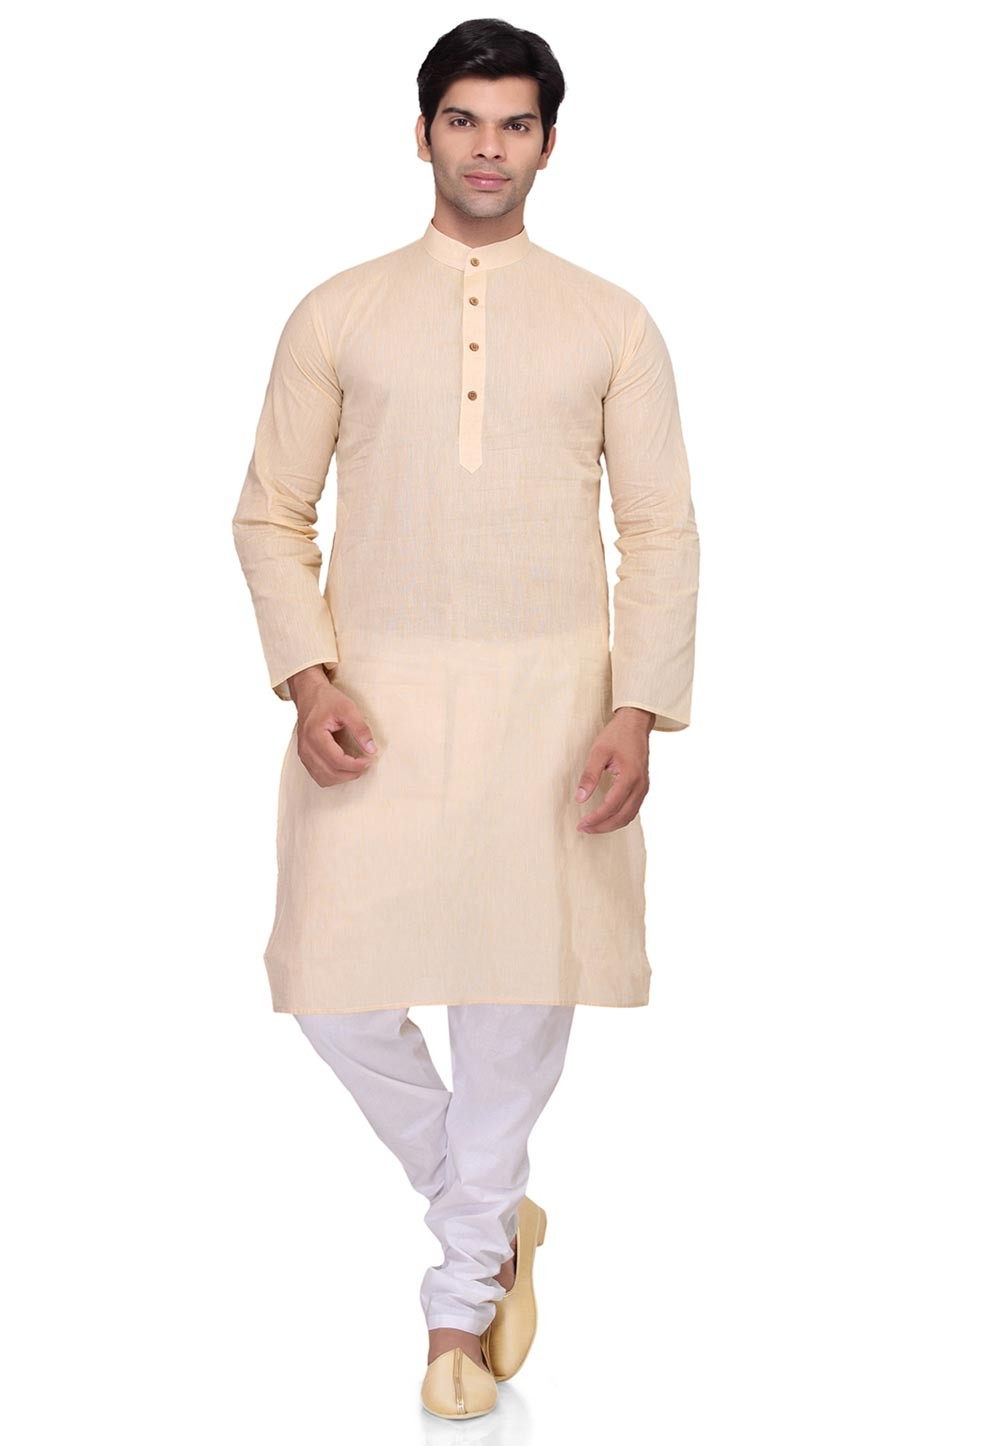 Captivating Beige Color Men's Wear Kurta Pyjama.